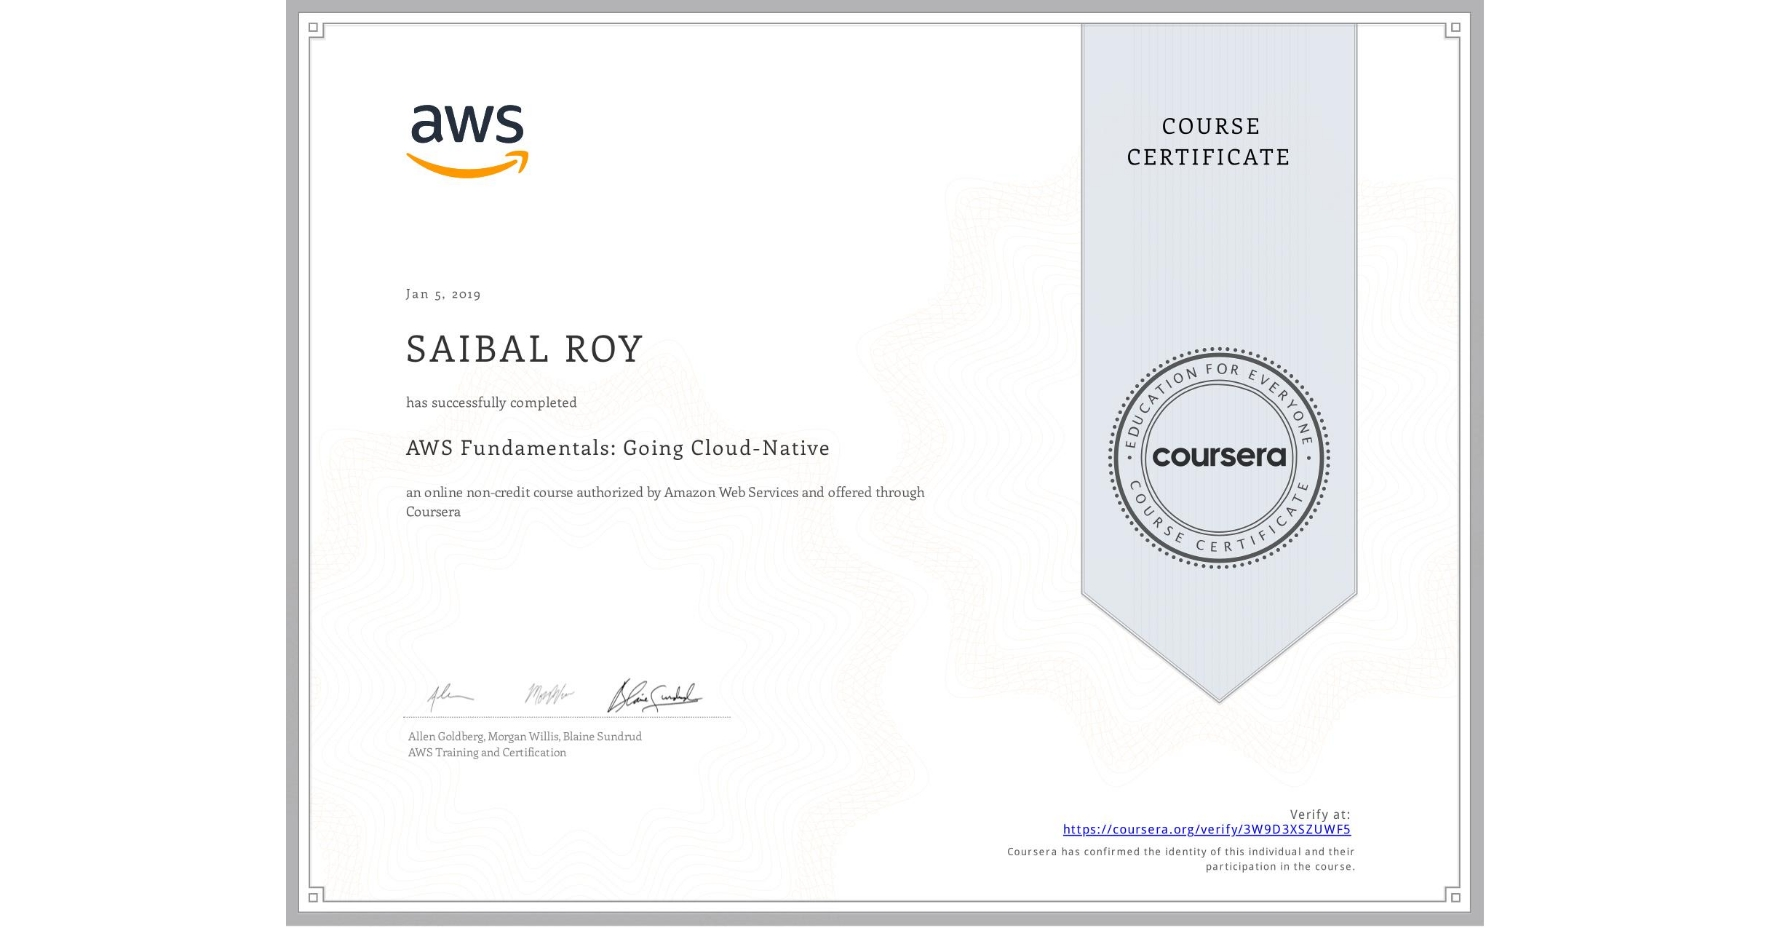 View certificate for SAIBAL ROY, AWS Fundamentals: Going Cloud-Native, an online non-credit course authorized by Amazon Web Services and offered through Coursera